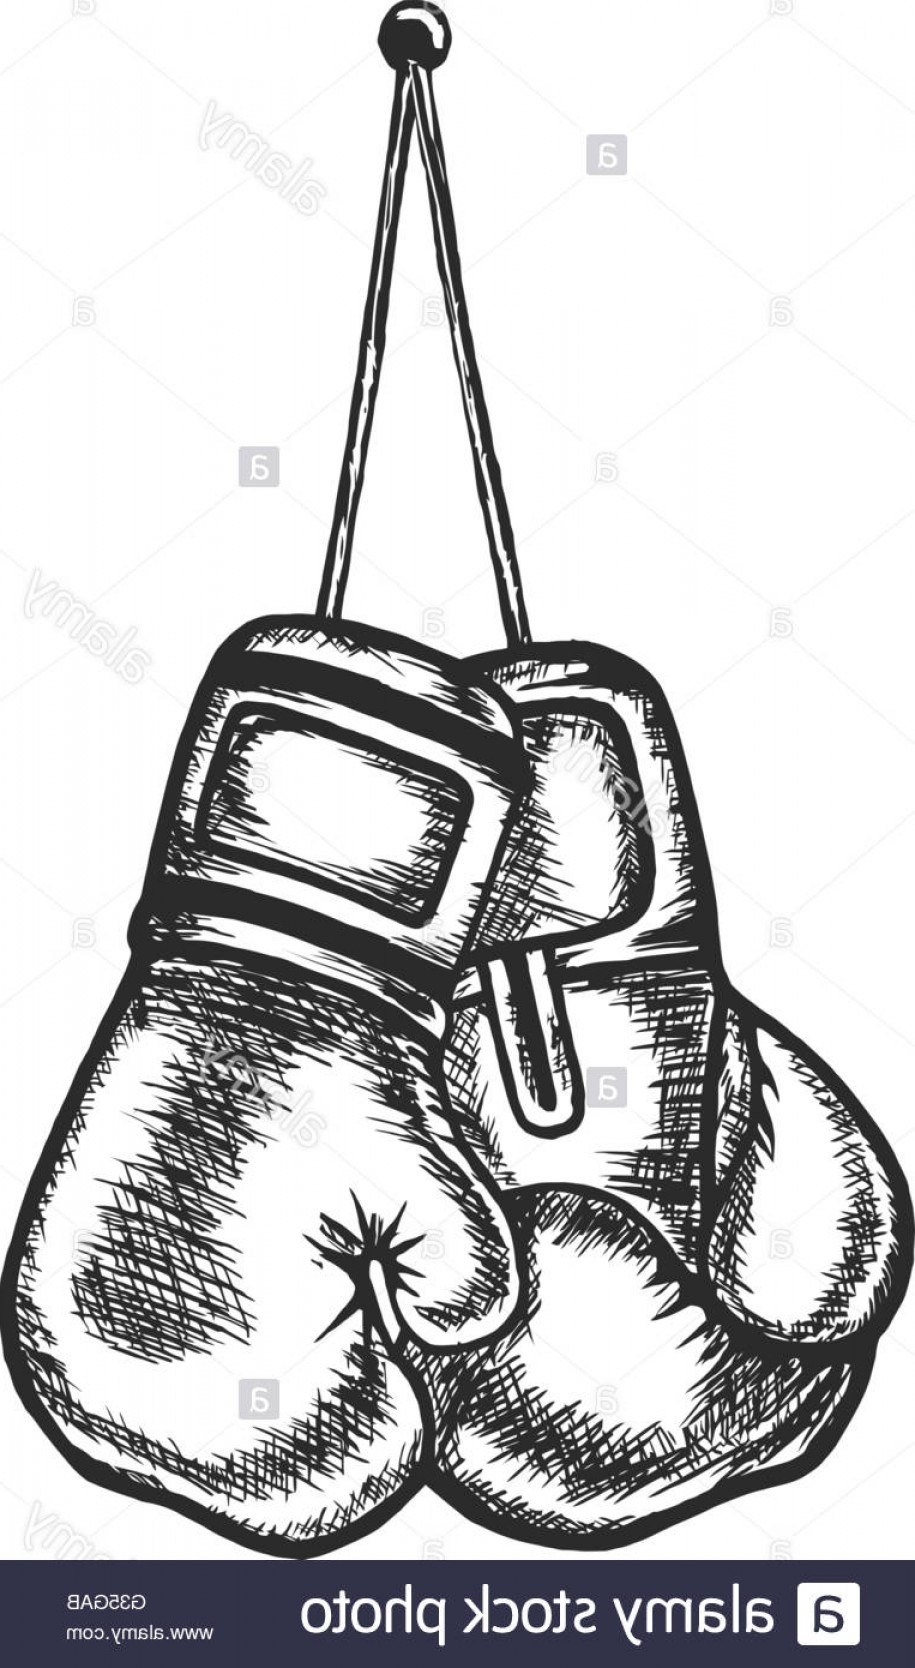 Pictures Of Boxing Gloves Vector Art: Stock Photo Boxing Sports Boxing Gloves Martial Arts